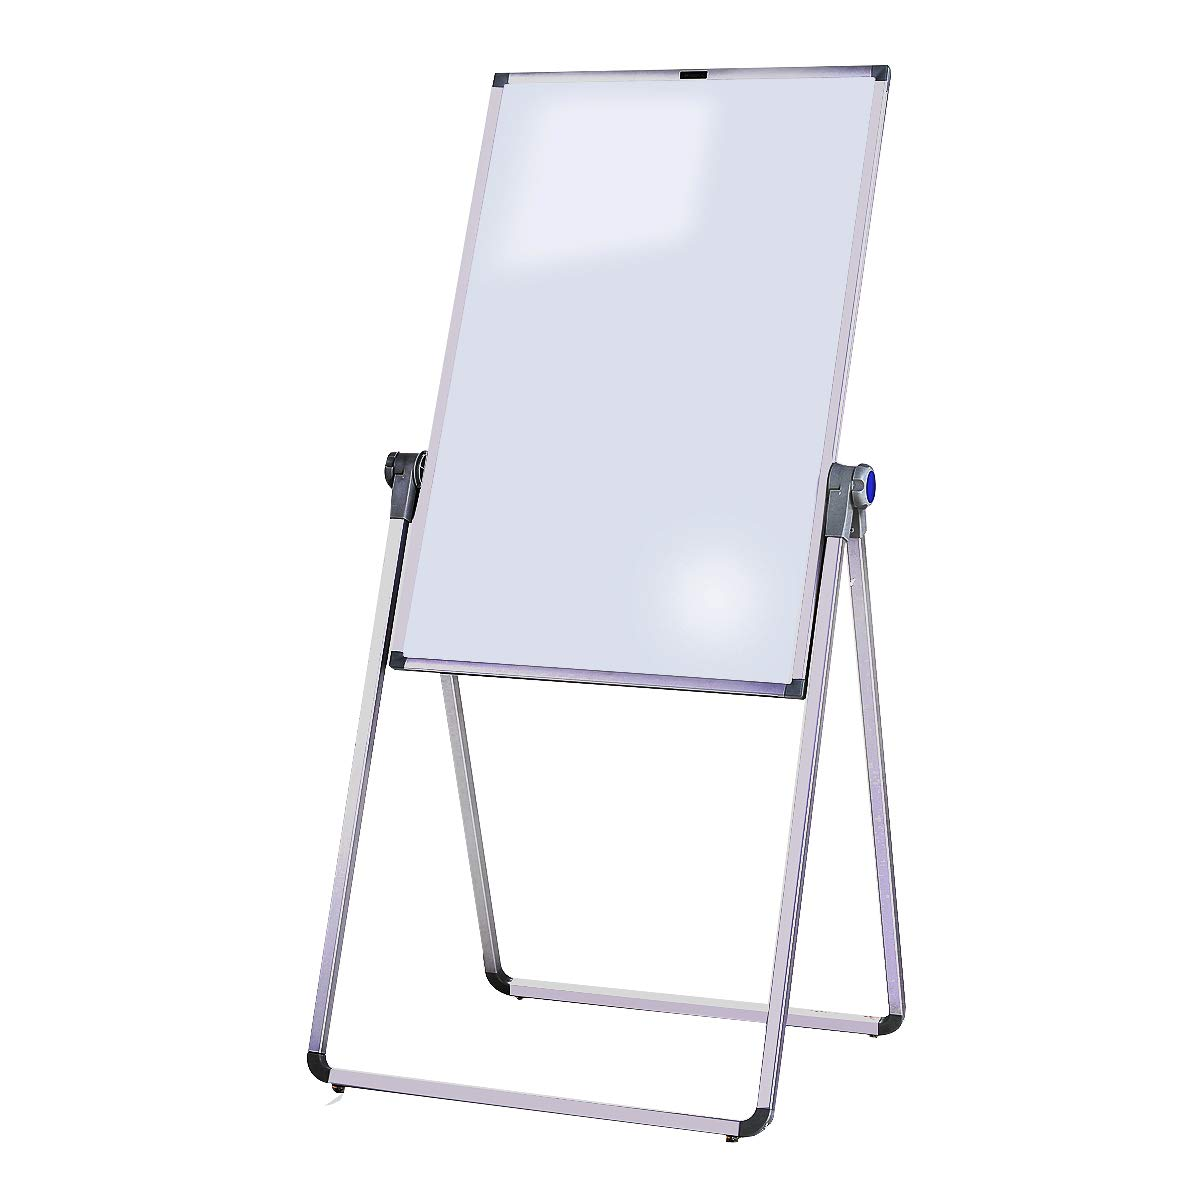 Zhidian White Boards Magnetic Dry Erase Boards Stand 36 24 Inch